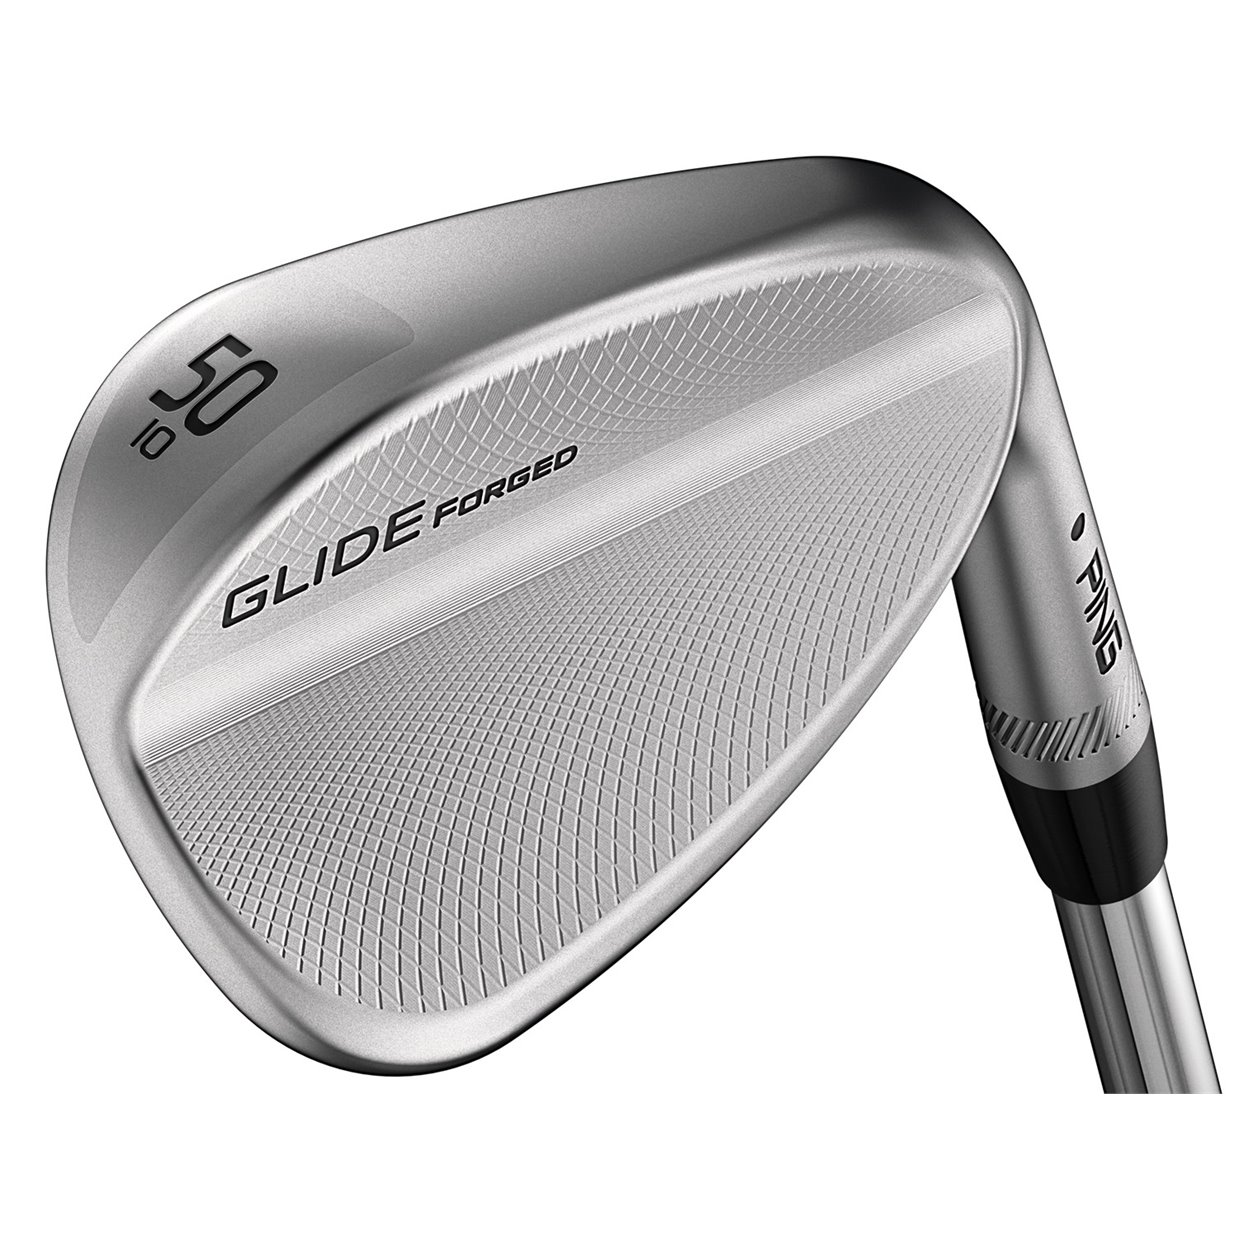 Ping Glide Forged Wedge Sand Wedge 56 Degree Golf Club At